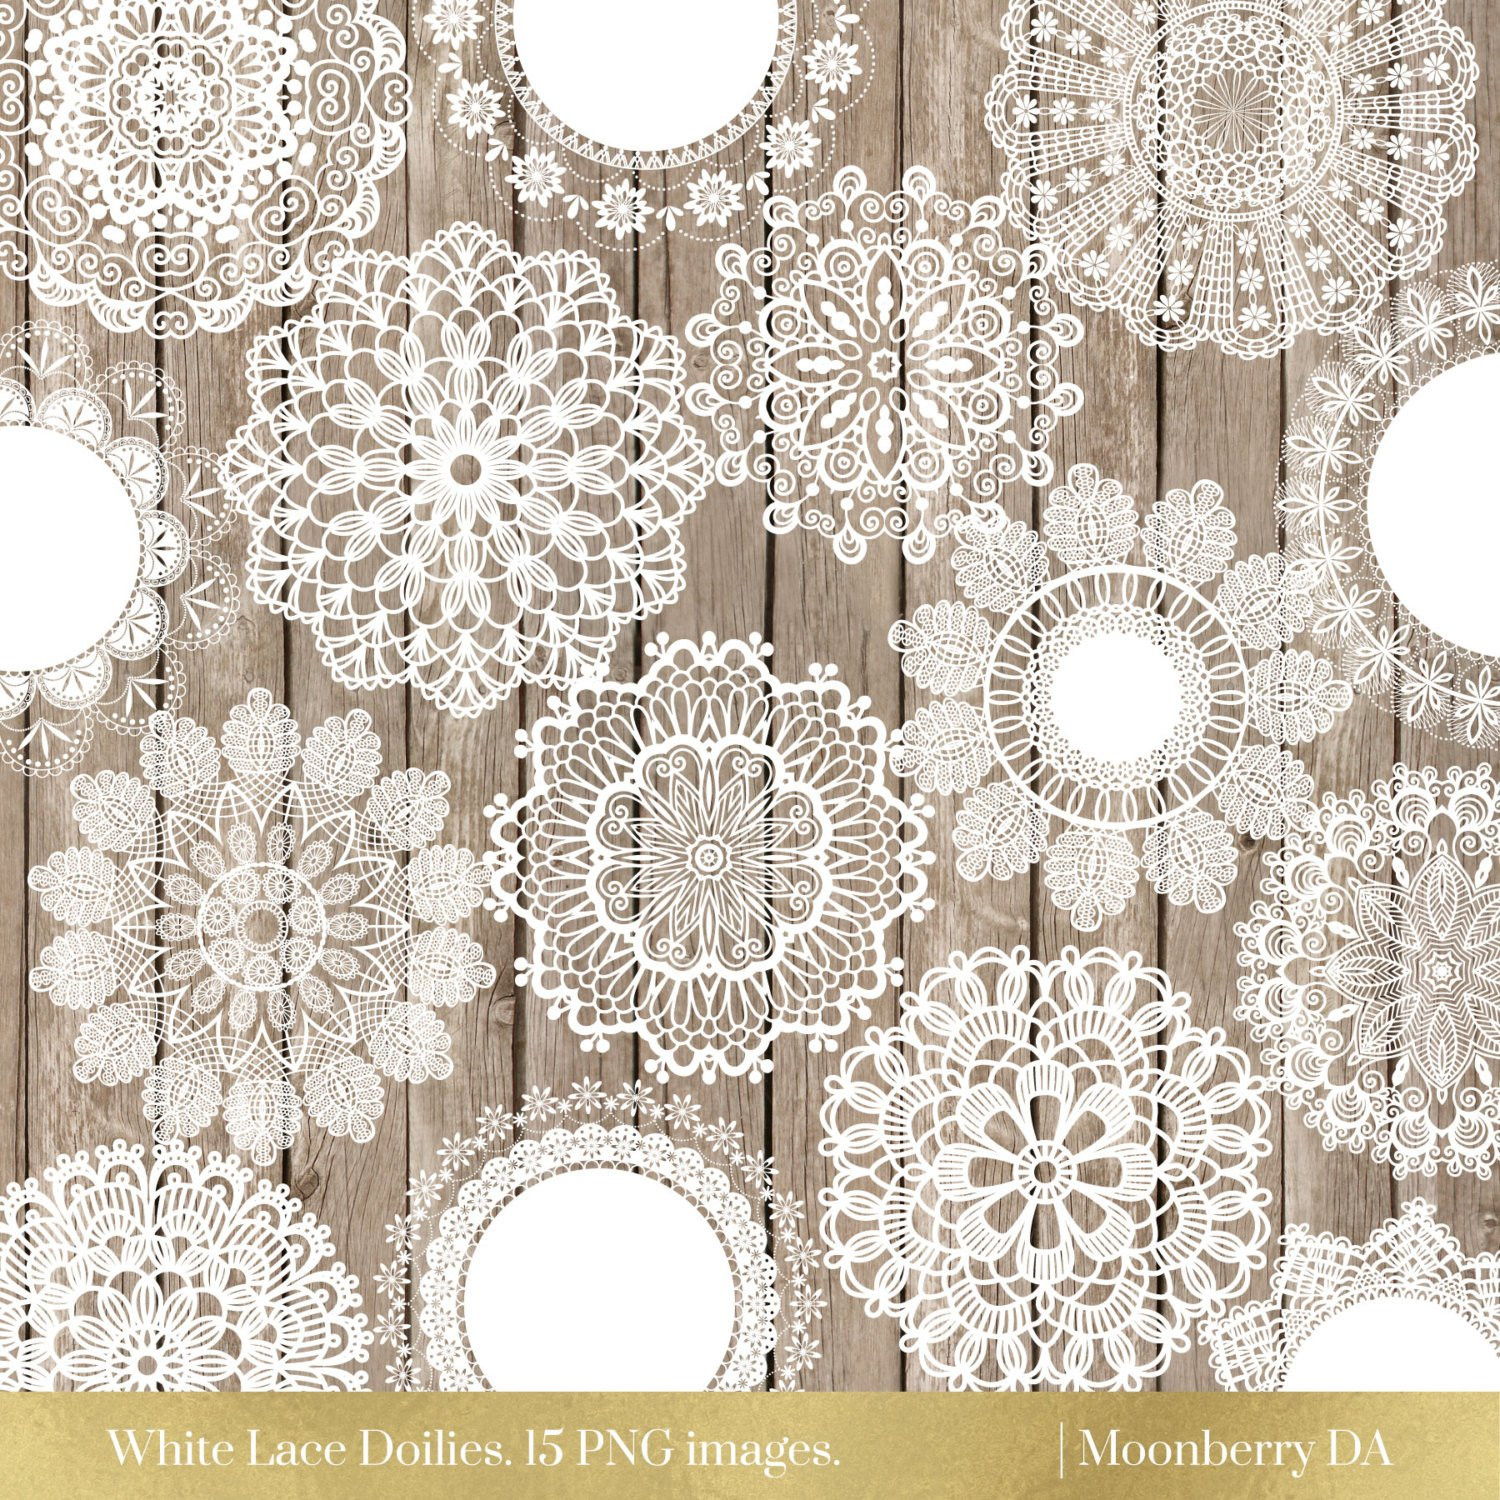 White Doilies Elegant White Lace Doilies Lace Doily Doily Clipart Lace Of Awesome 41 Photos White Doilies